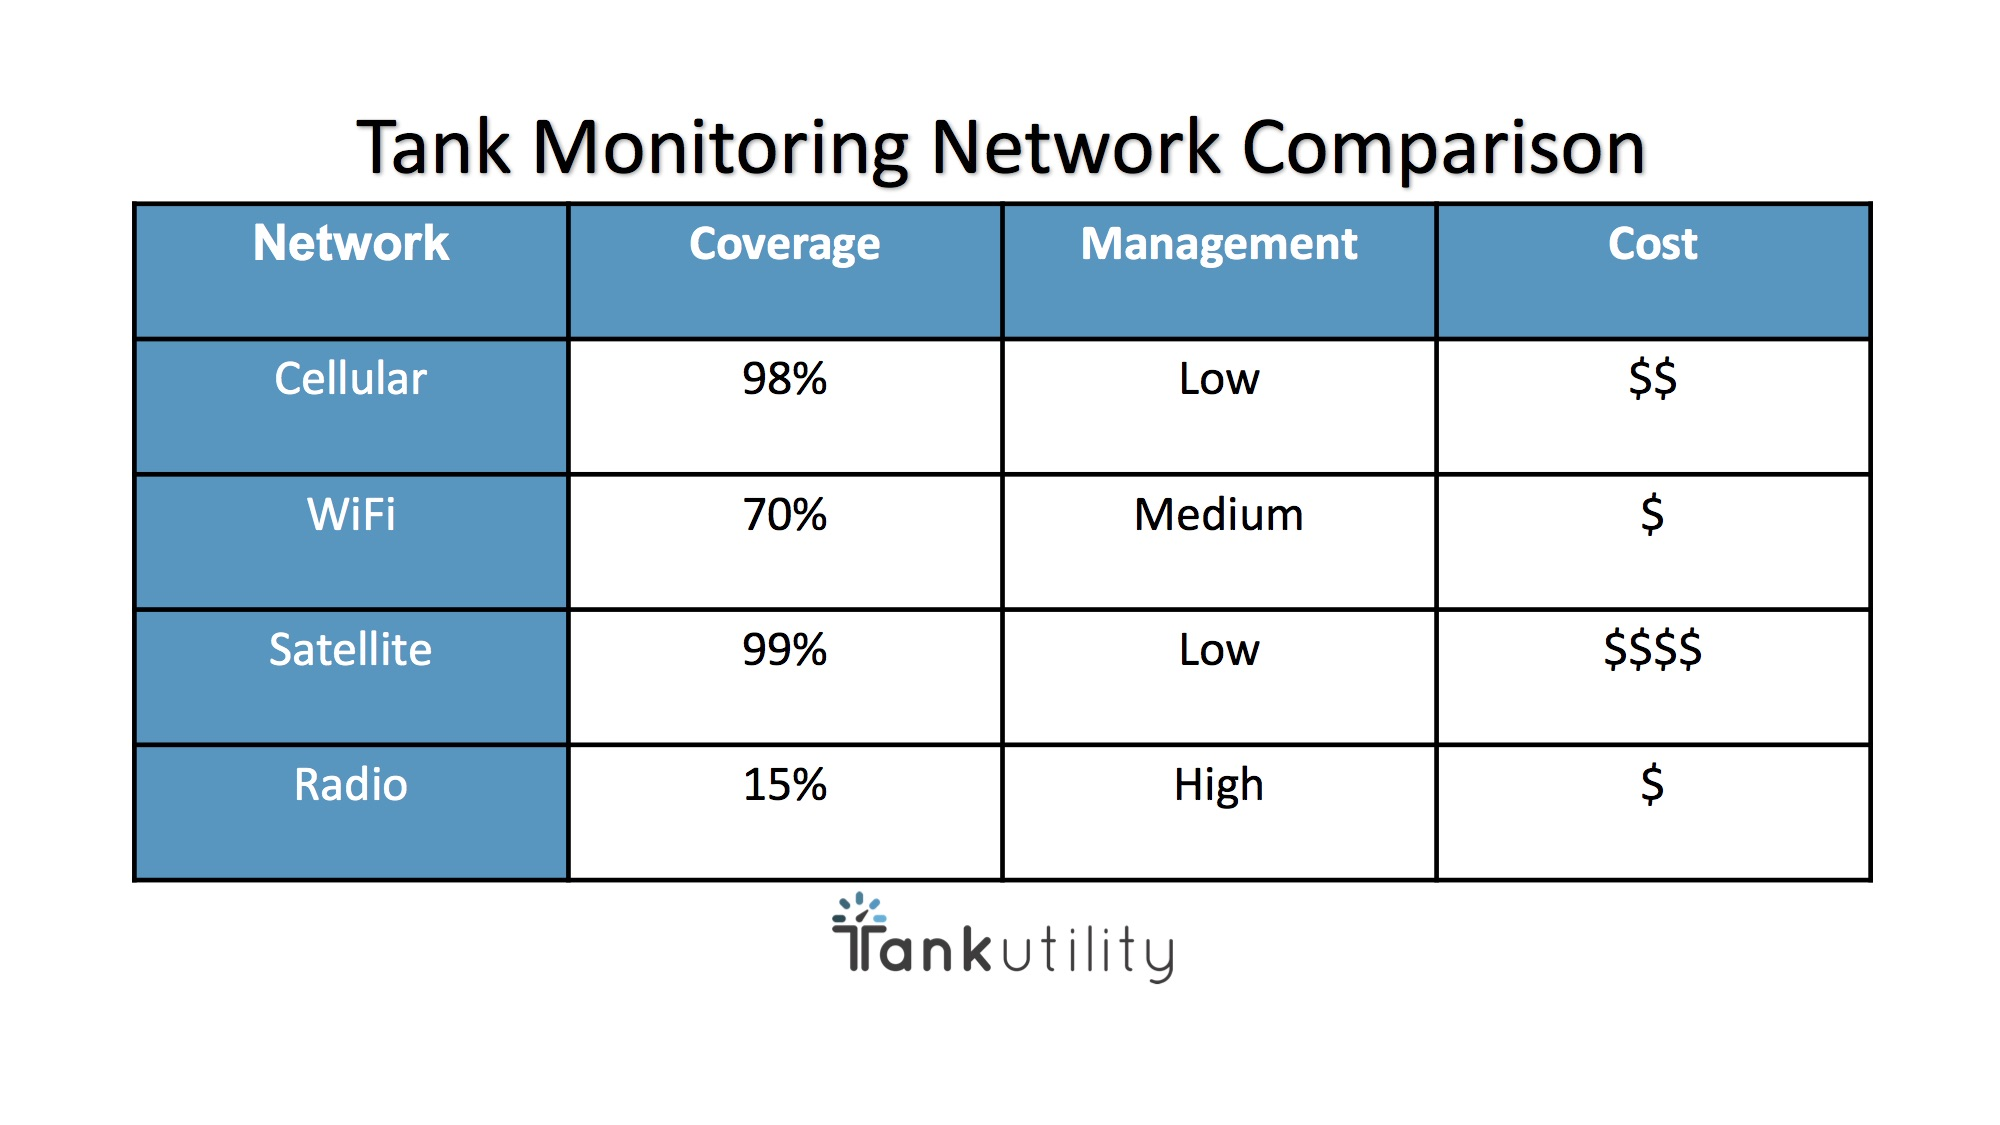 Tank Monitoring Network Comparison Chart